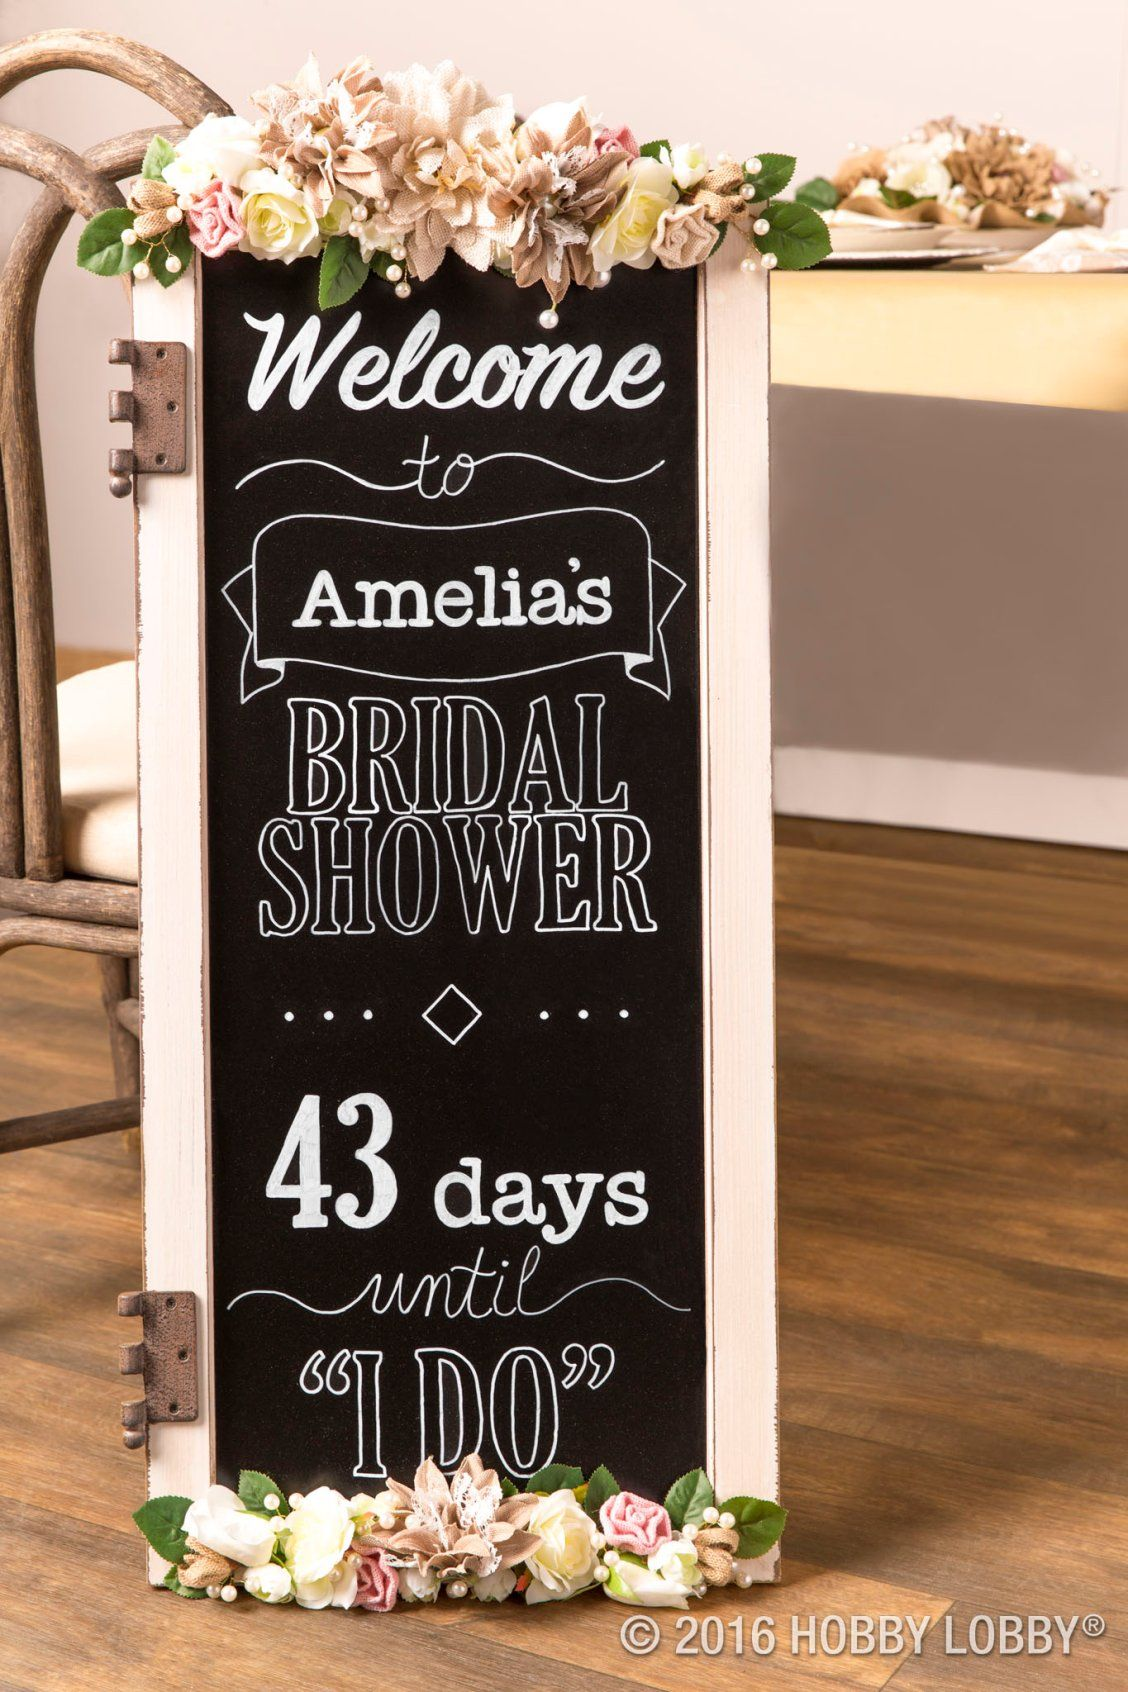 Celebrate The Bride To Be With Bridal Shower Decor That Suits Her